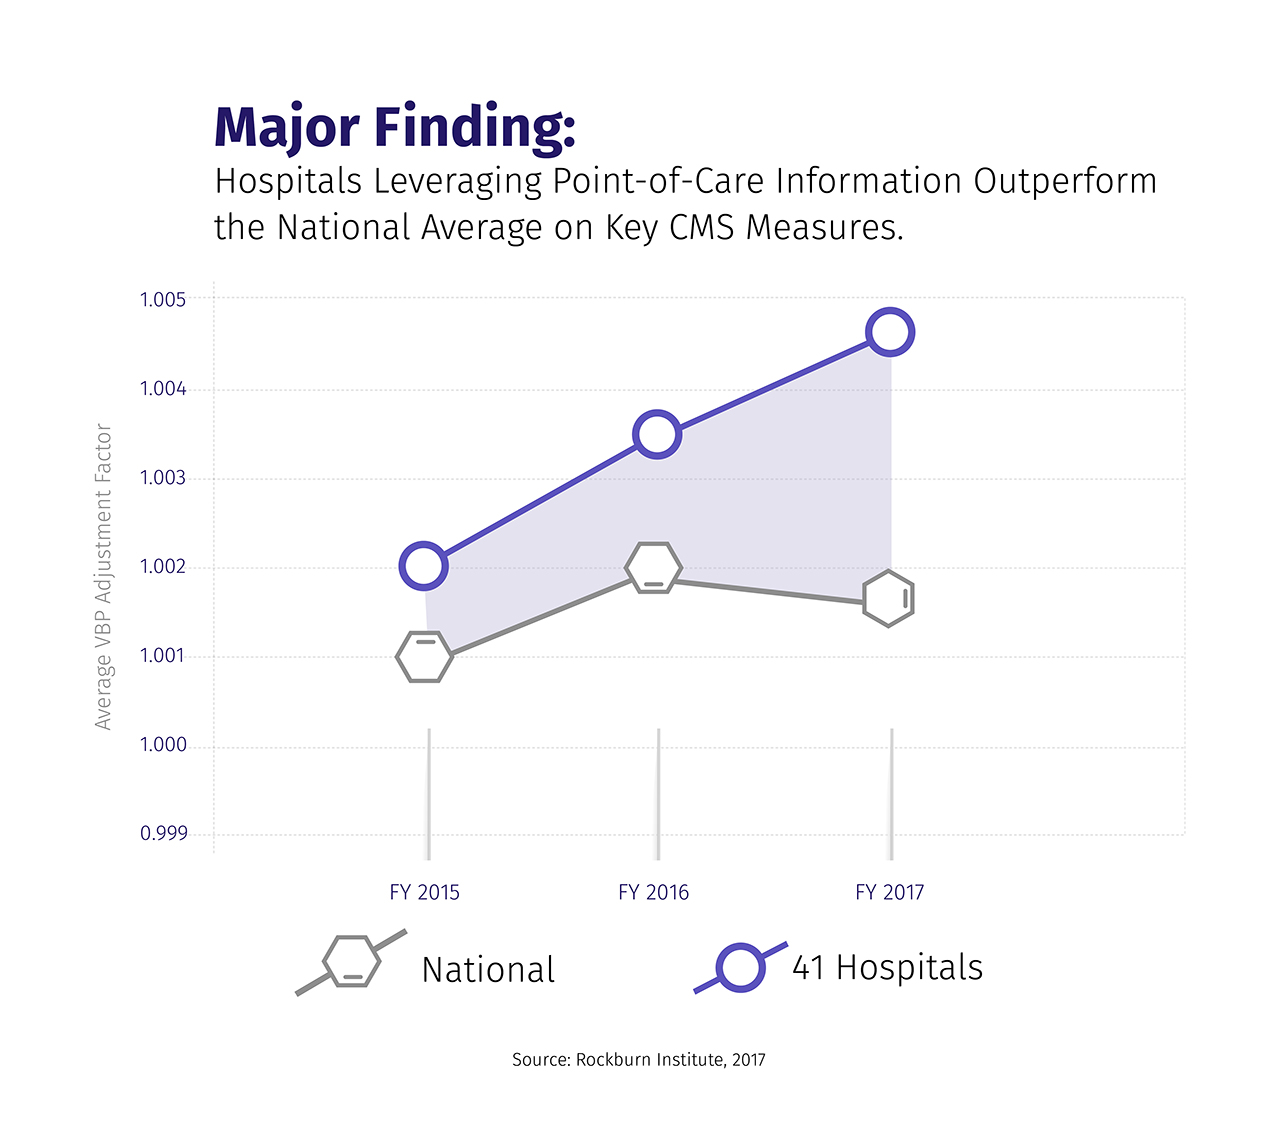 Hospitals leveraging point-of-care data